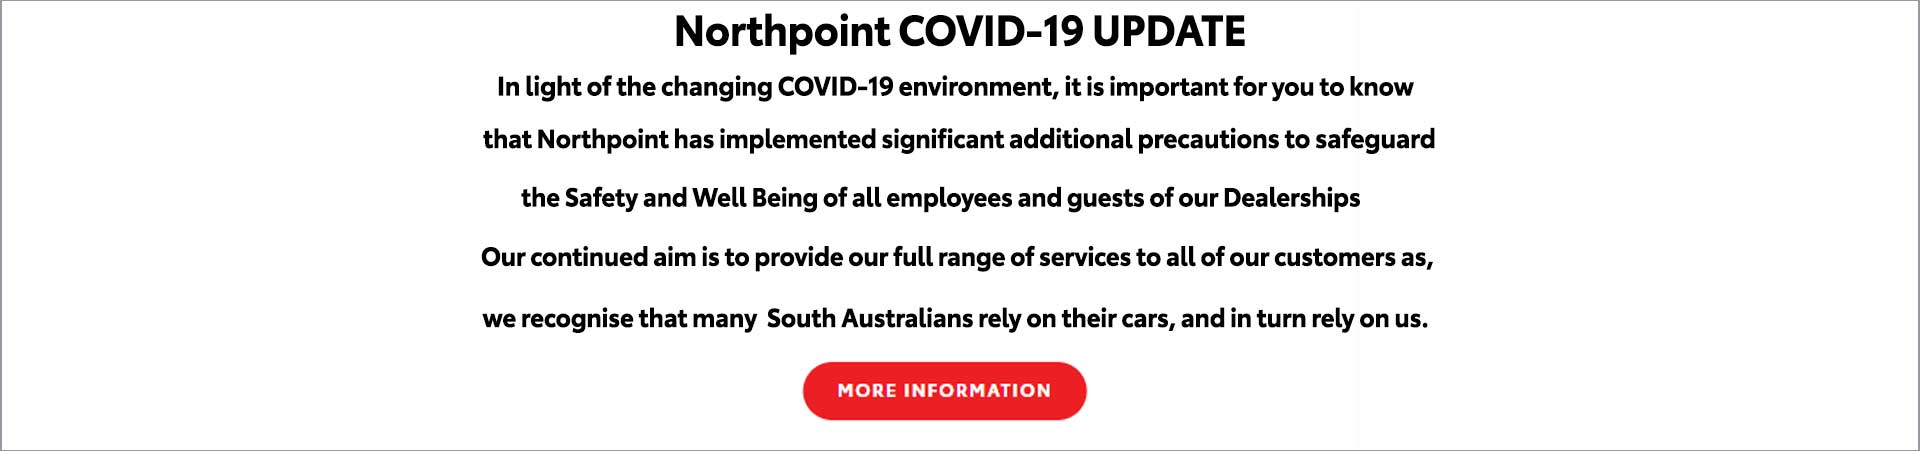 Northpoint COVID-19 Information